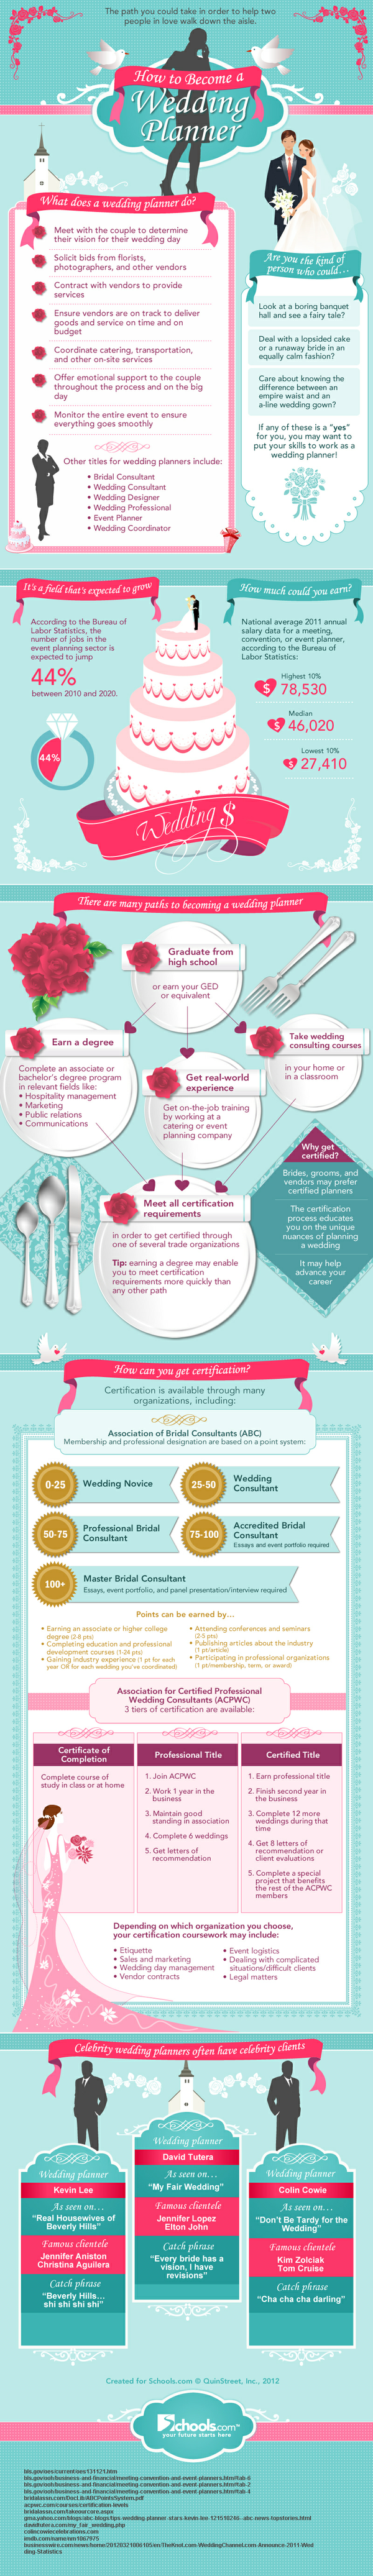 how to become a wedding planner infographic